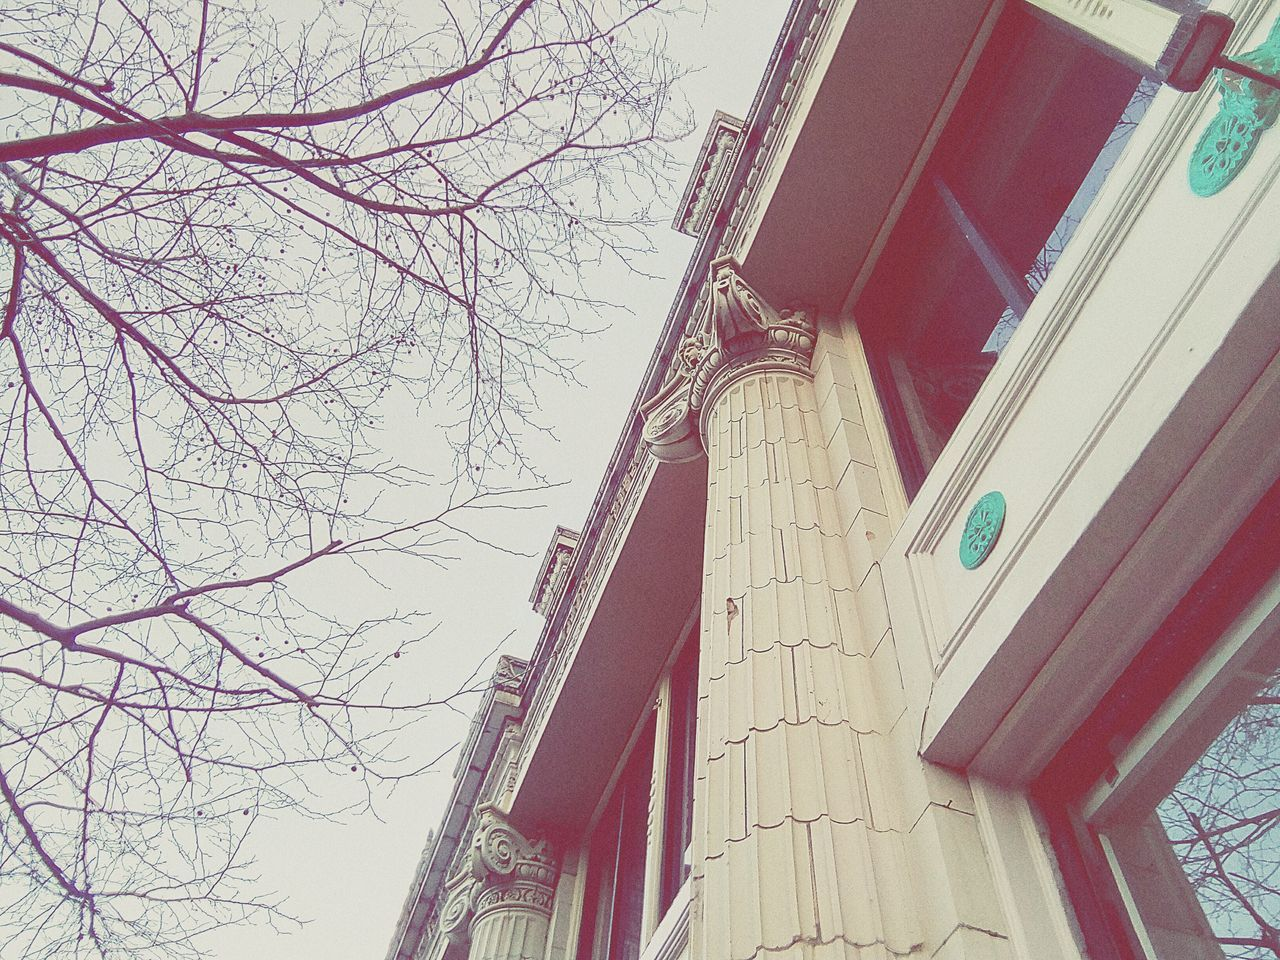 architecture, built structure, building exterior, low angle view, bare tree, no people, tree, outdoors, day, branch, sky